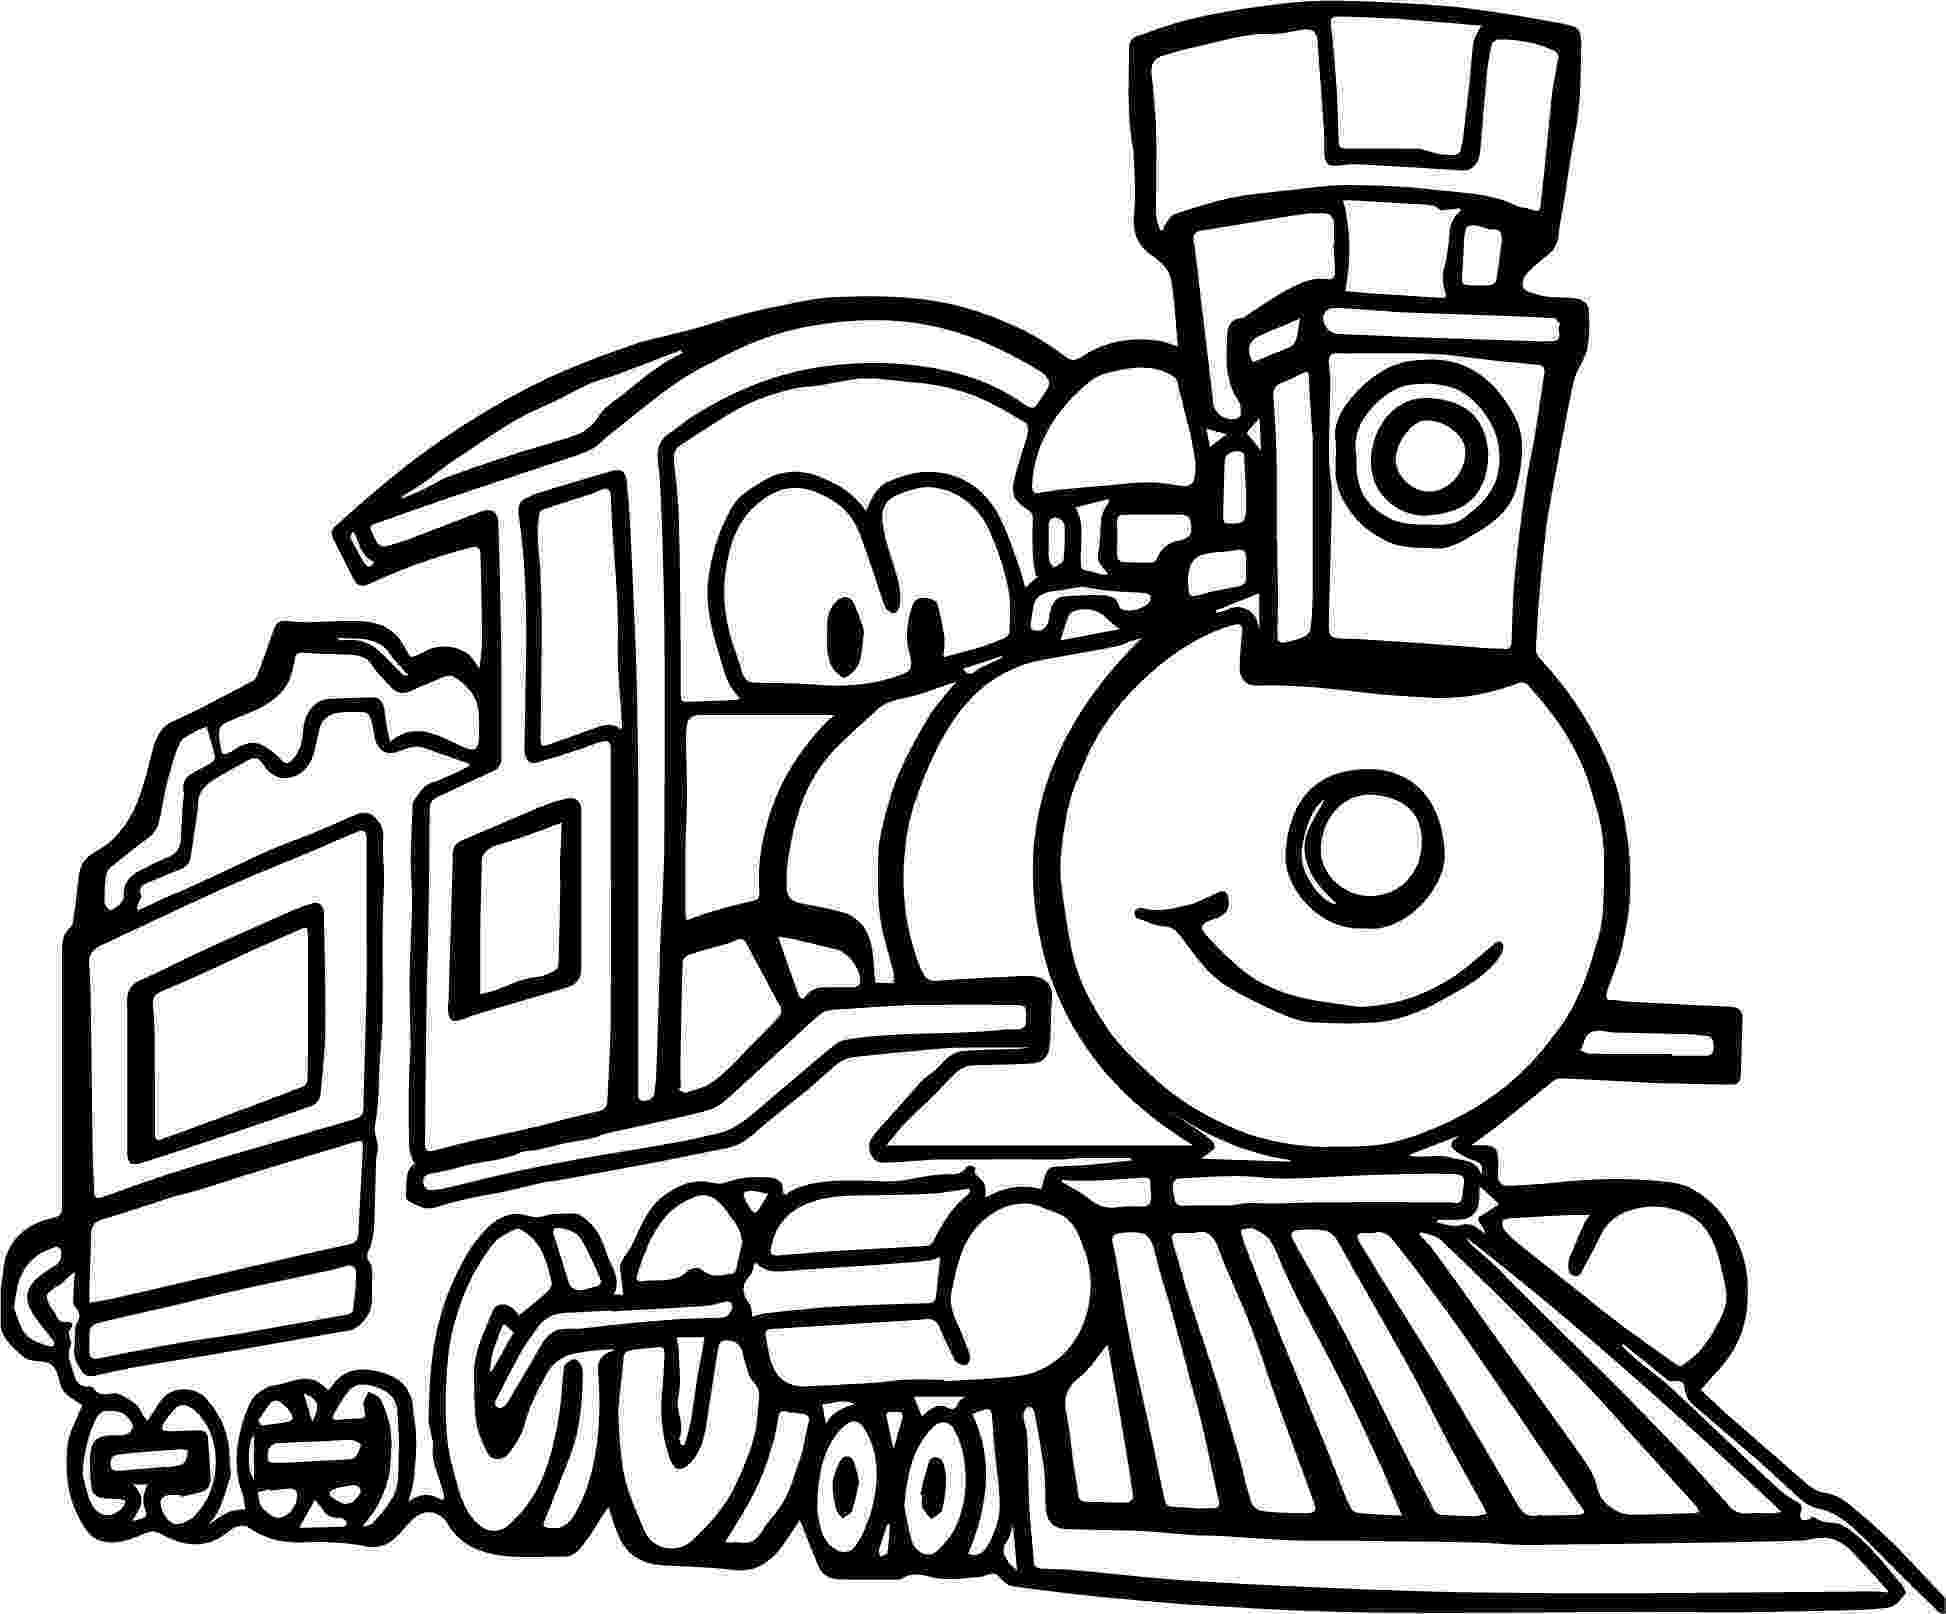 printable train free printable train coloring pages for kids cool2bkids printable train 1 1